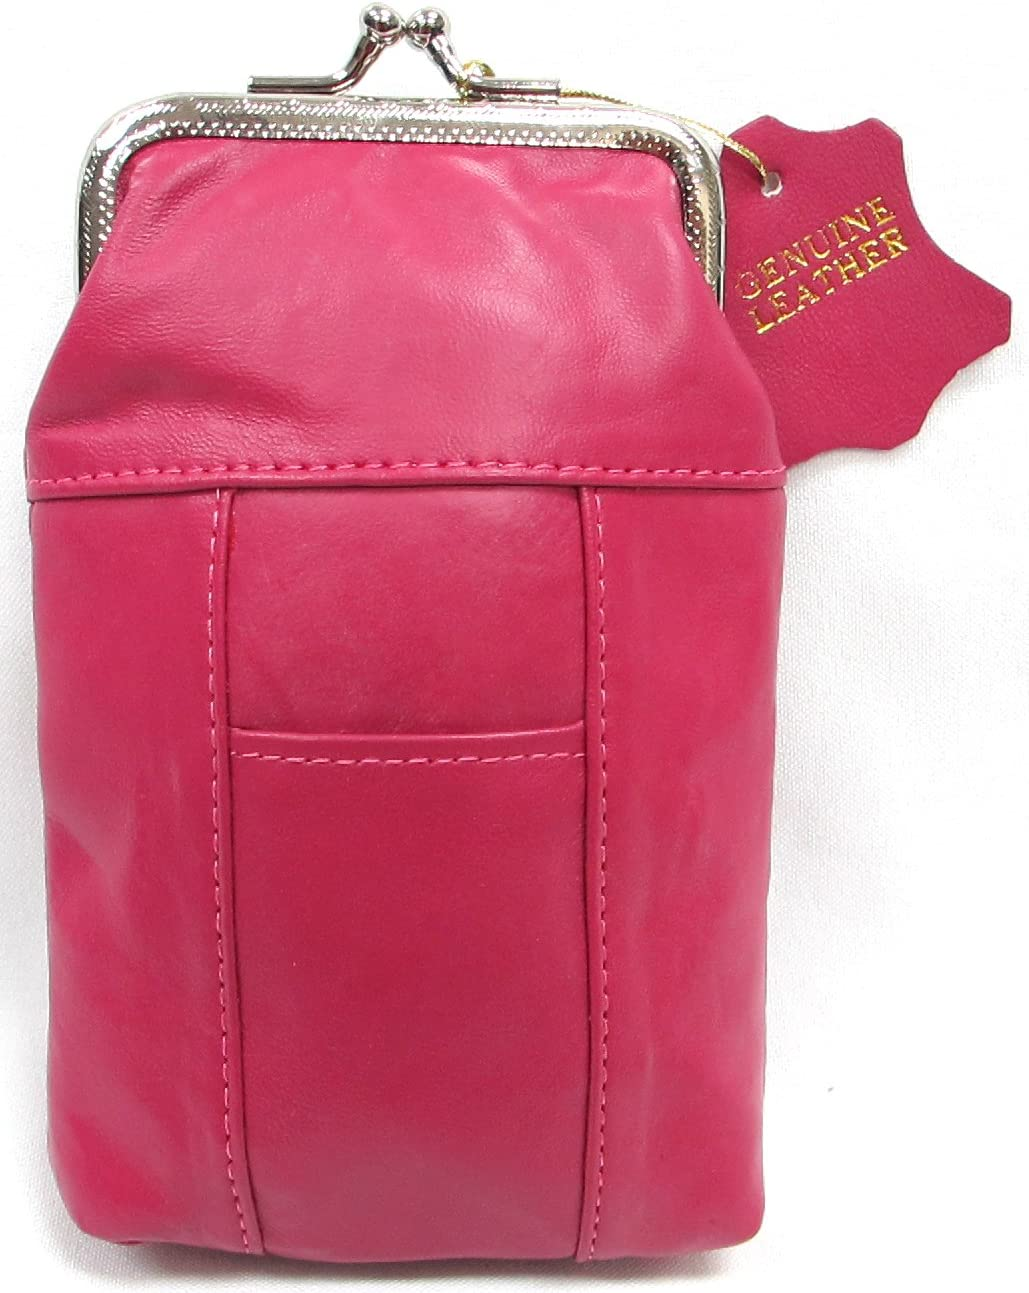 Genuine Soft Leather Cigarette half Case 2pc + for Pink $11.99 Black Outlet sale feature